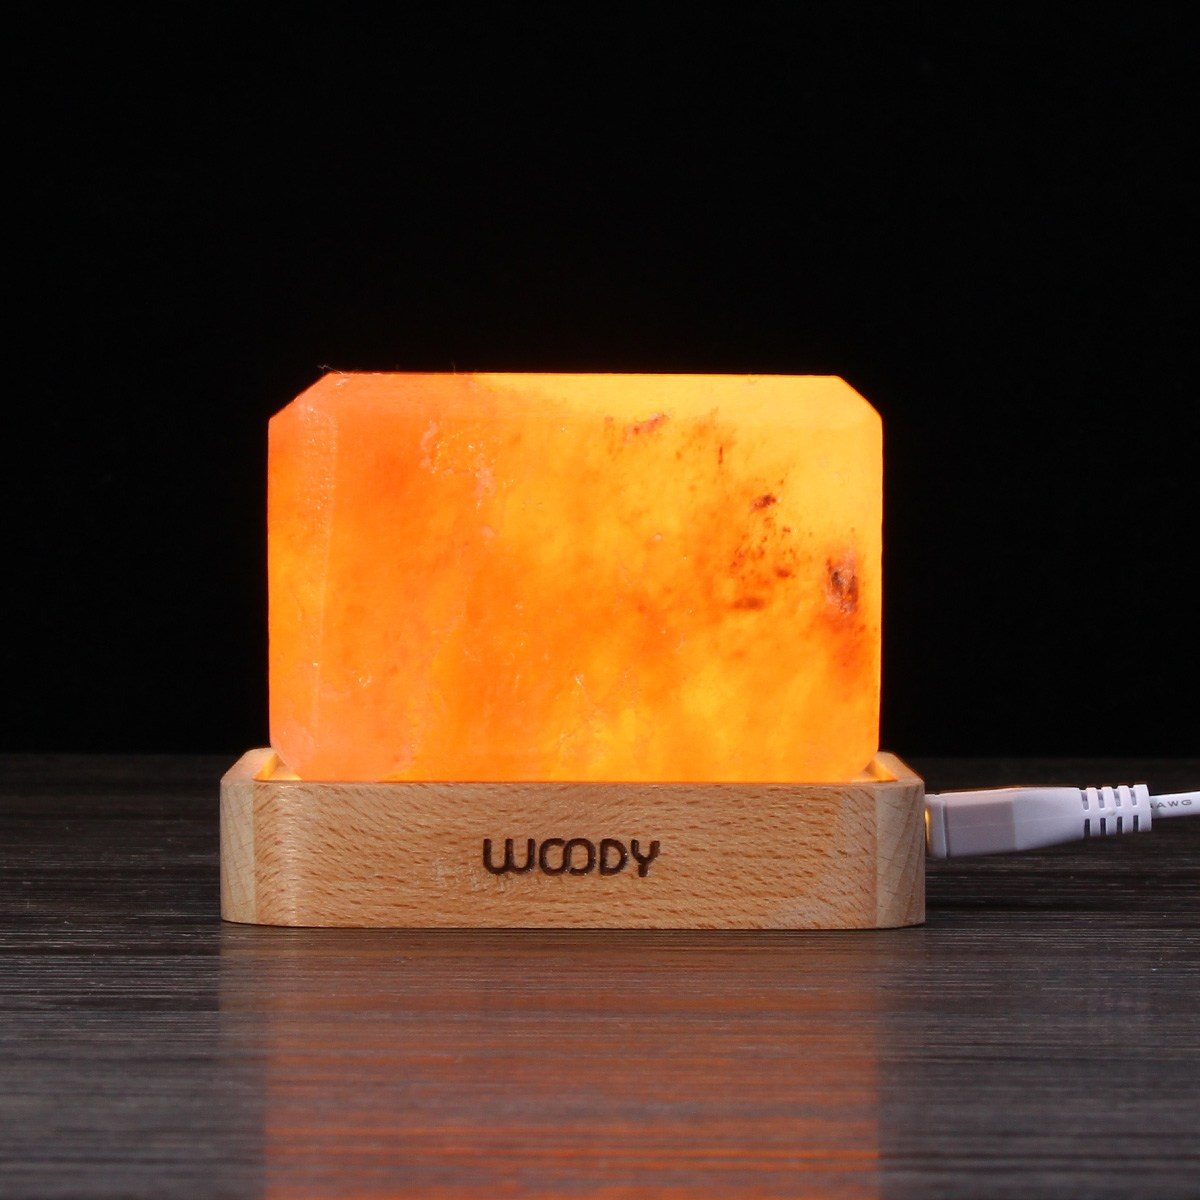 Crystal Himalayan Salt Lamp Air Purifier Night Light USB Power Desk Lamp Bedside Bar Coffee Shop Home Decor Warm White Lighting ...